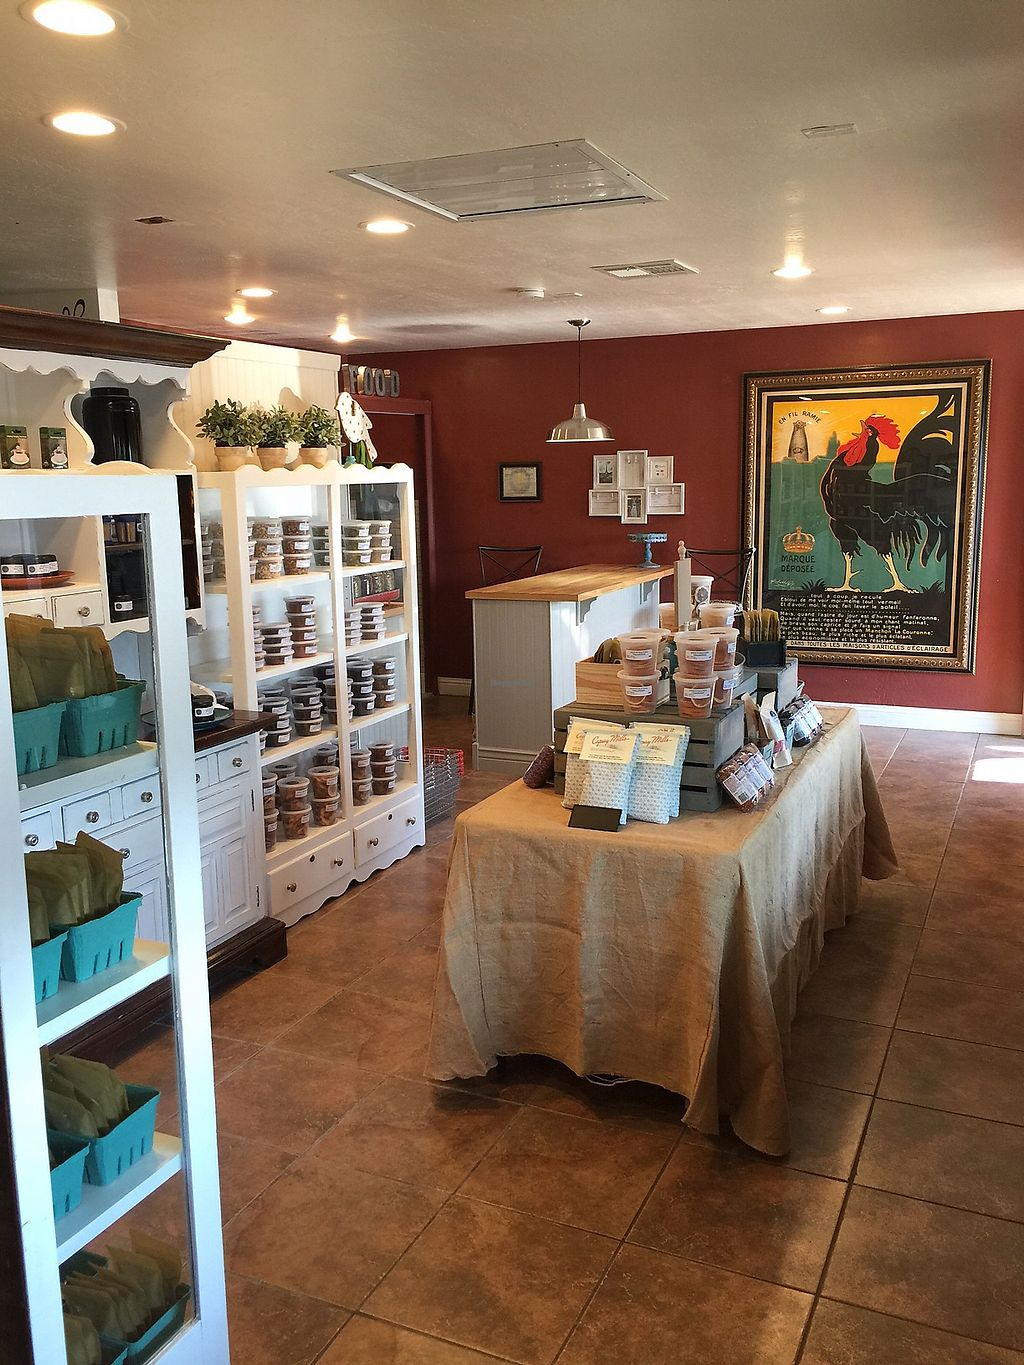 """Photo of Taylor's Provisions  by <a href=""""/members/profile/deltashark"""">deltashark</a> <br/>Seasonal display of items in the store.  <br/> July 15, 2017  - <a href='/contact/abuse/image/96286/280793'>Report</a>"""